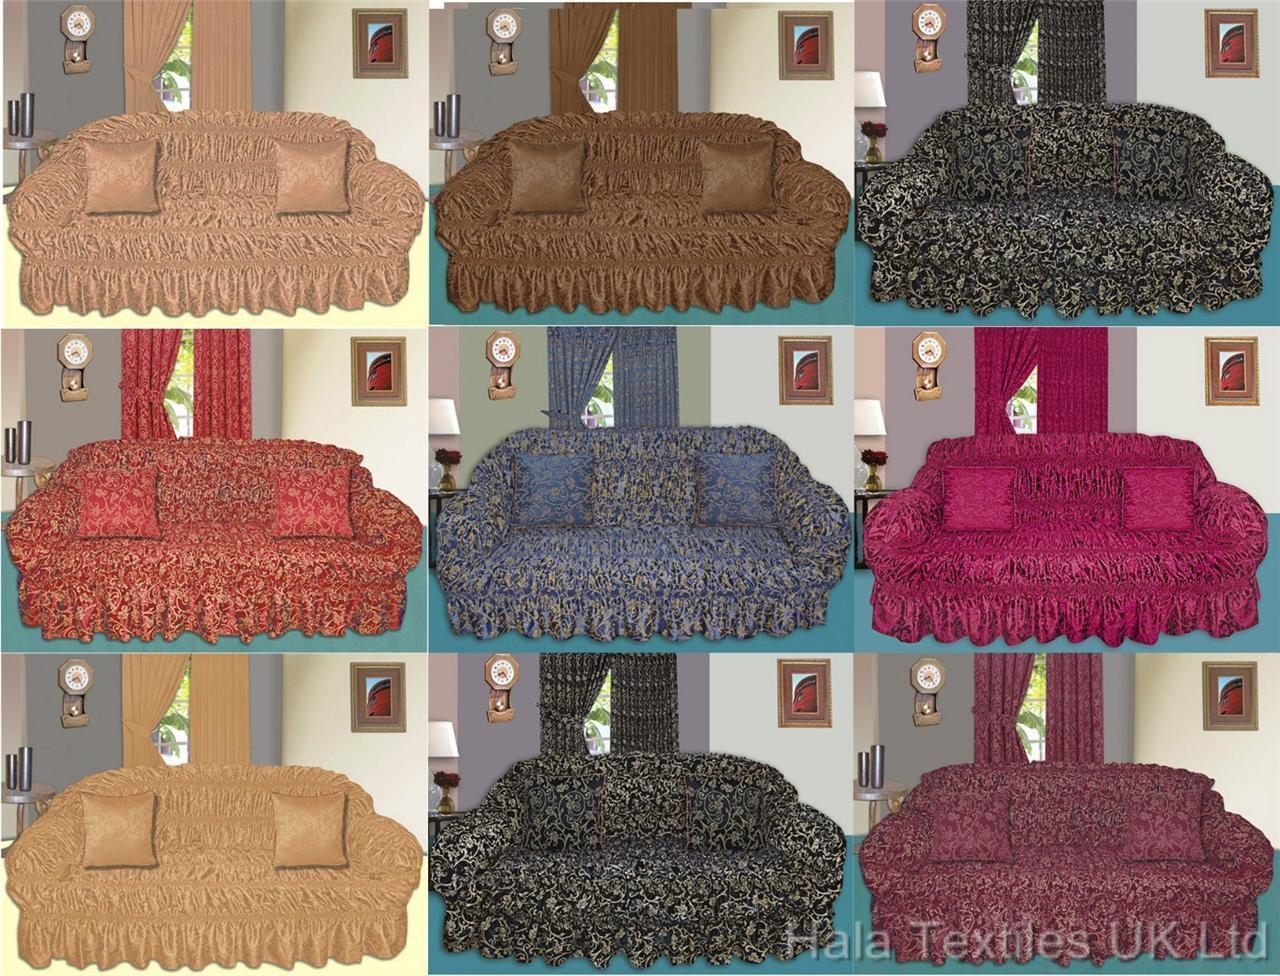 Remarkable 2 Seater Sofa Covers Uk In Inspiration To Remodel Home Intended For Sofa Settee Covers (View 21 of 22)